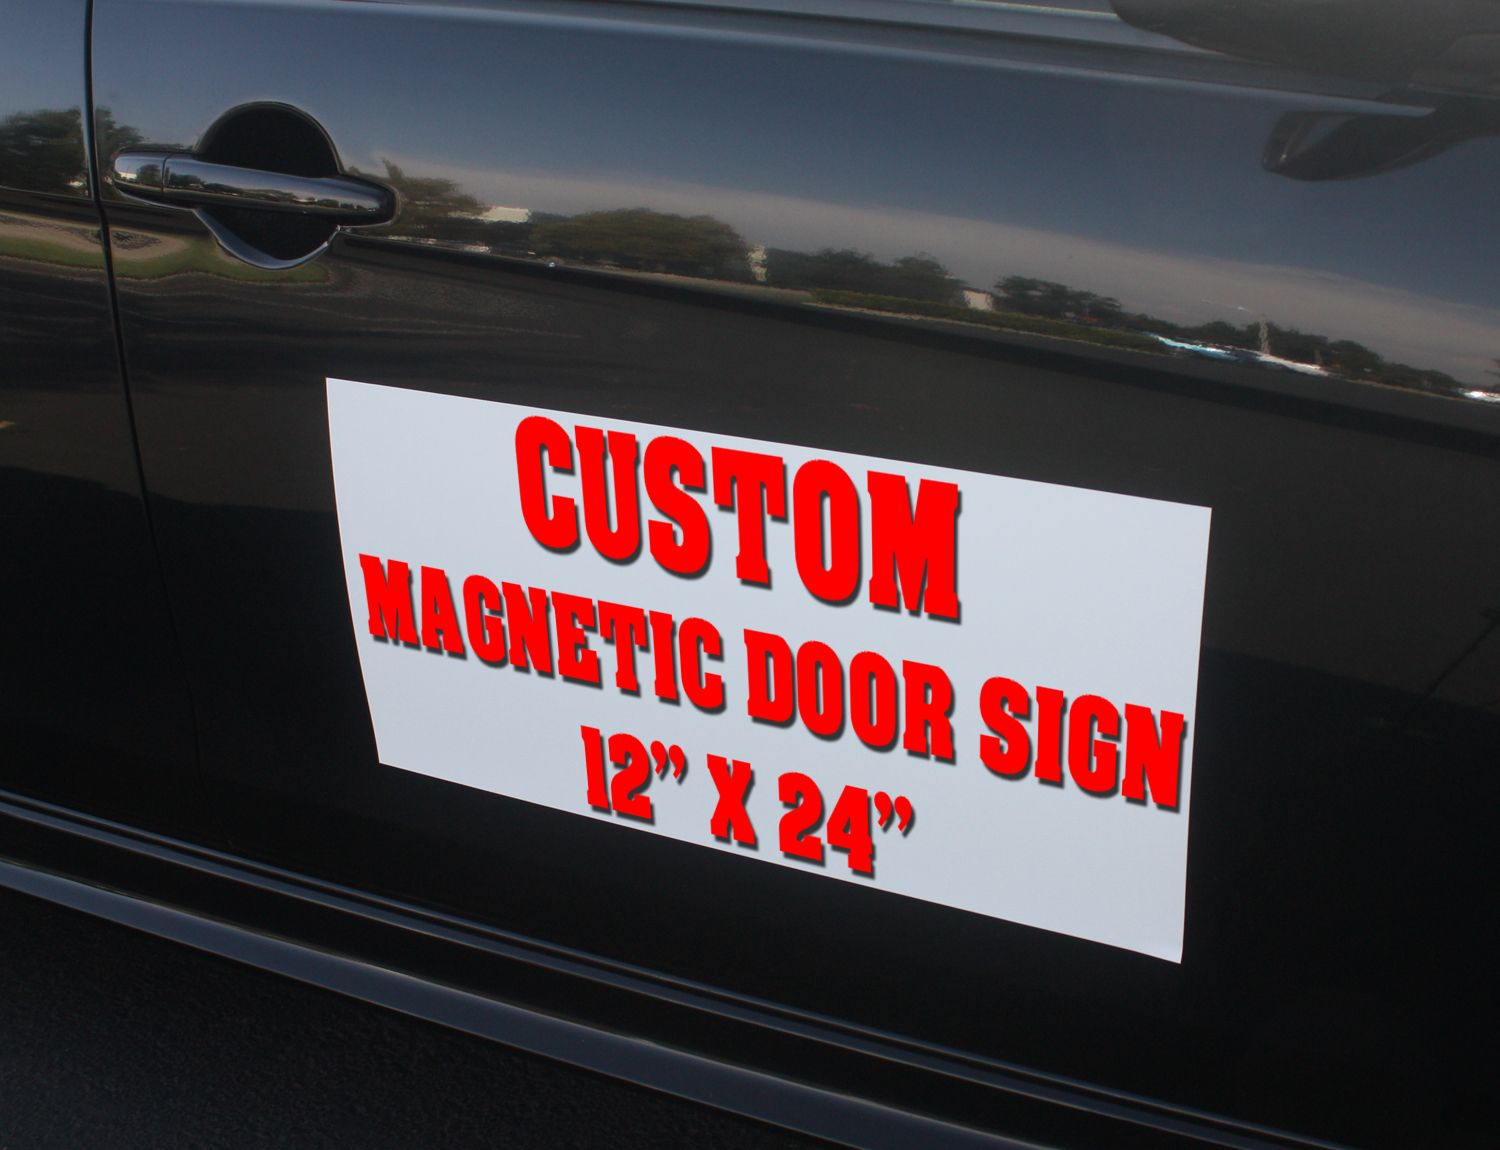 Unique Custom Car Magnets Ideas On Pinterest Date Recipes - Custom car magnet advertisingcar door magnet advertising business magnets for cars car